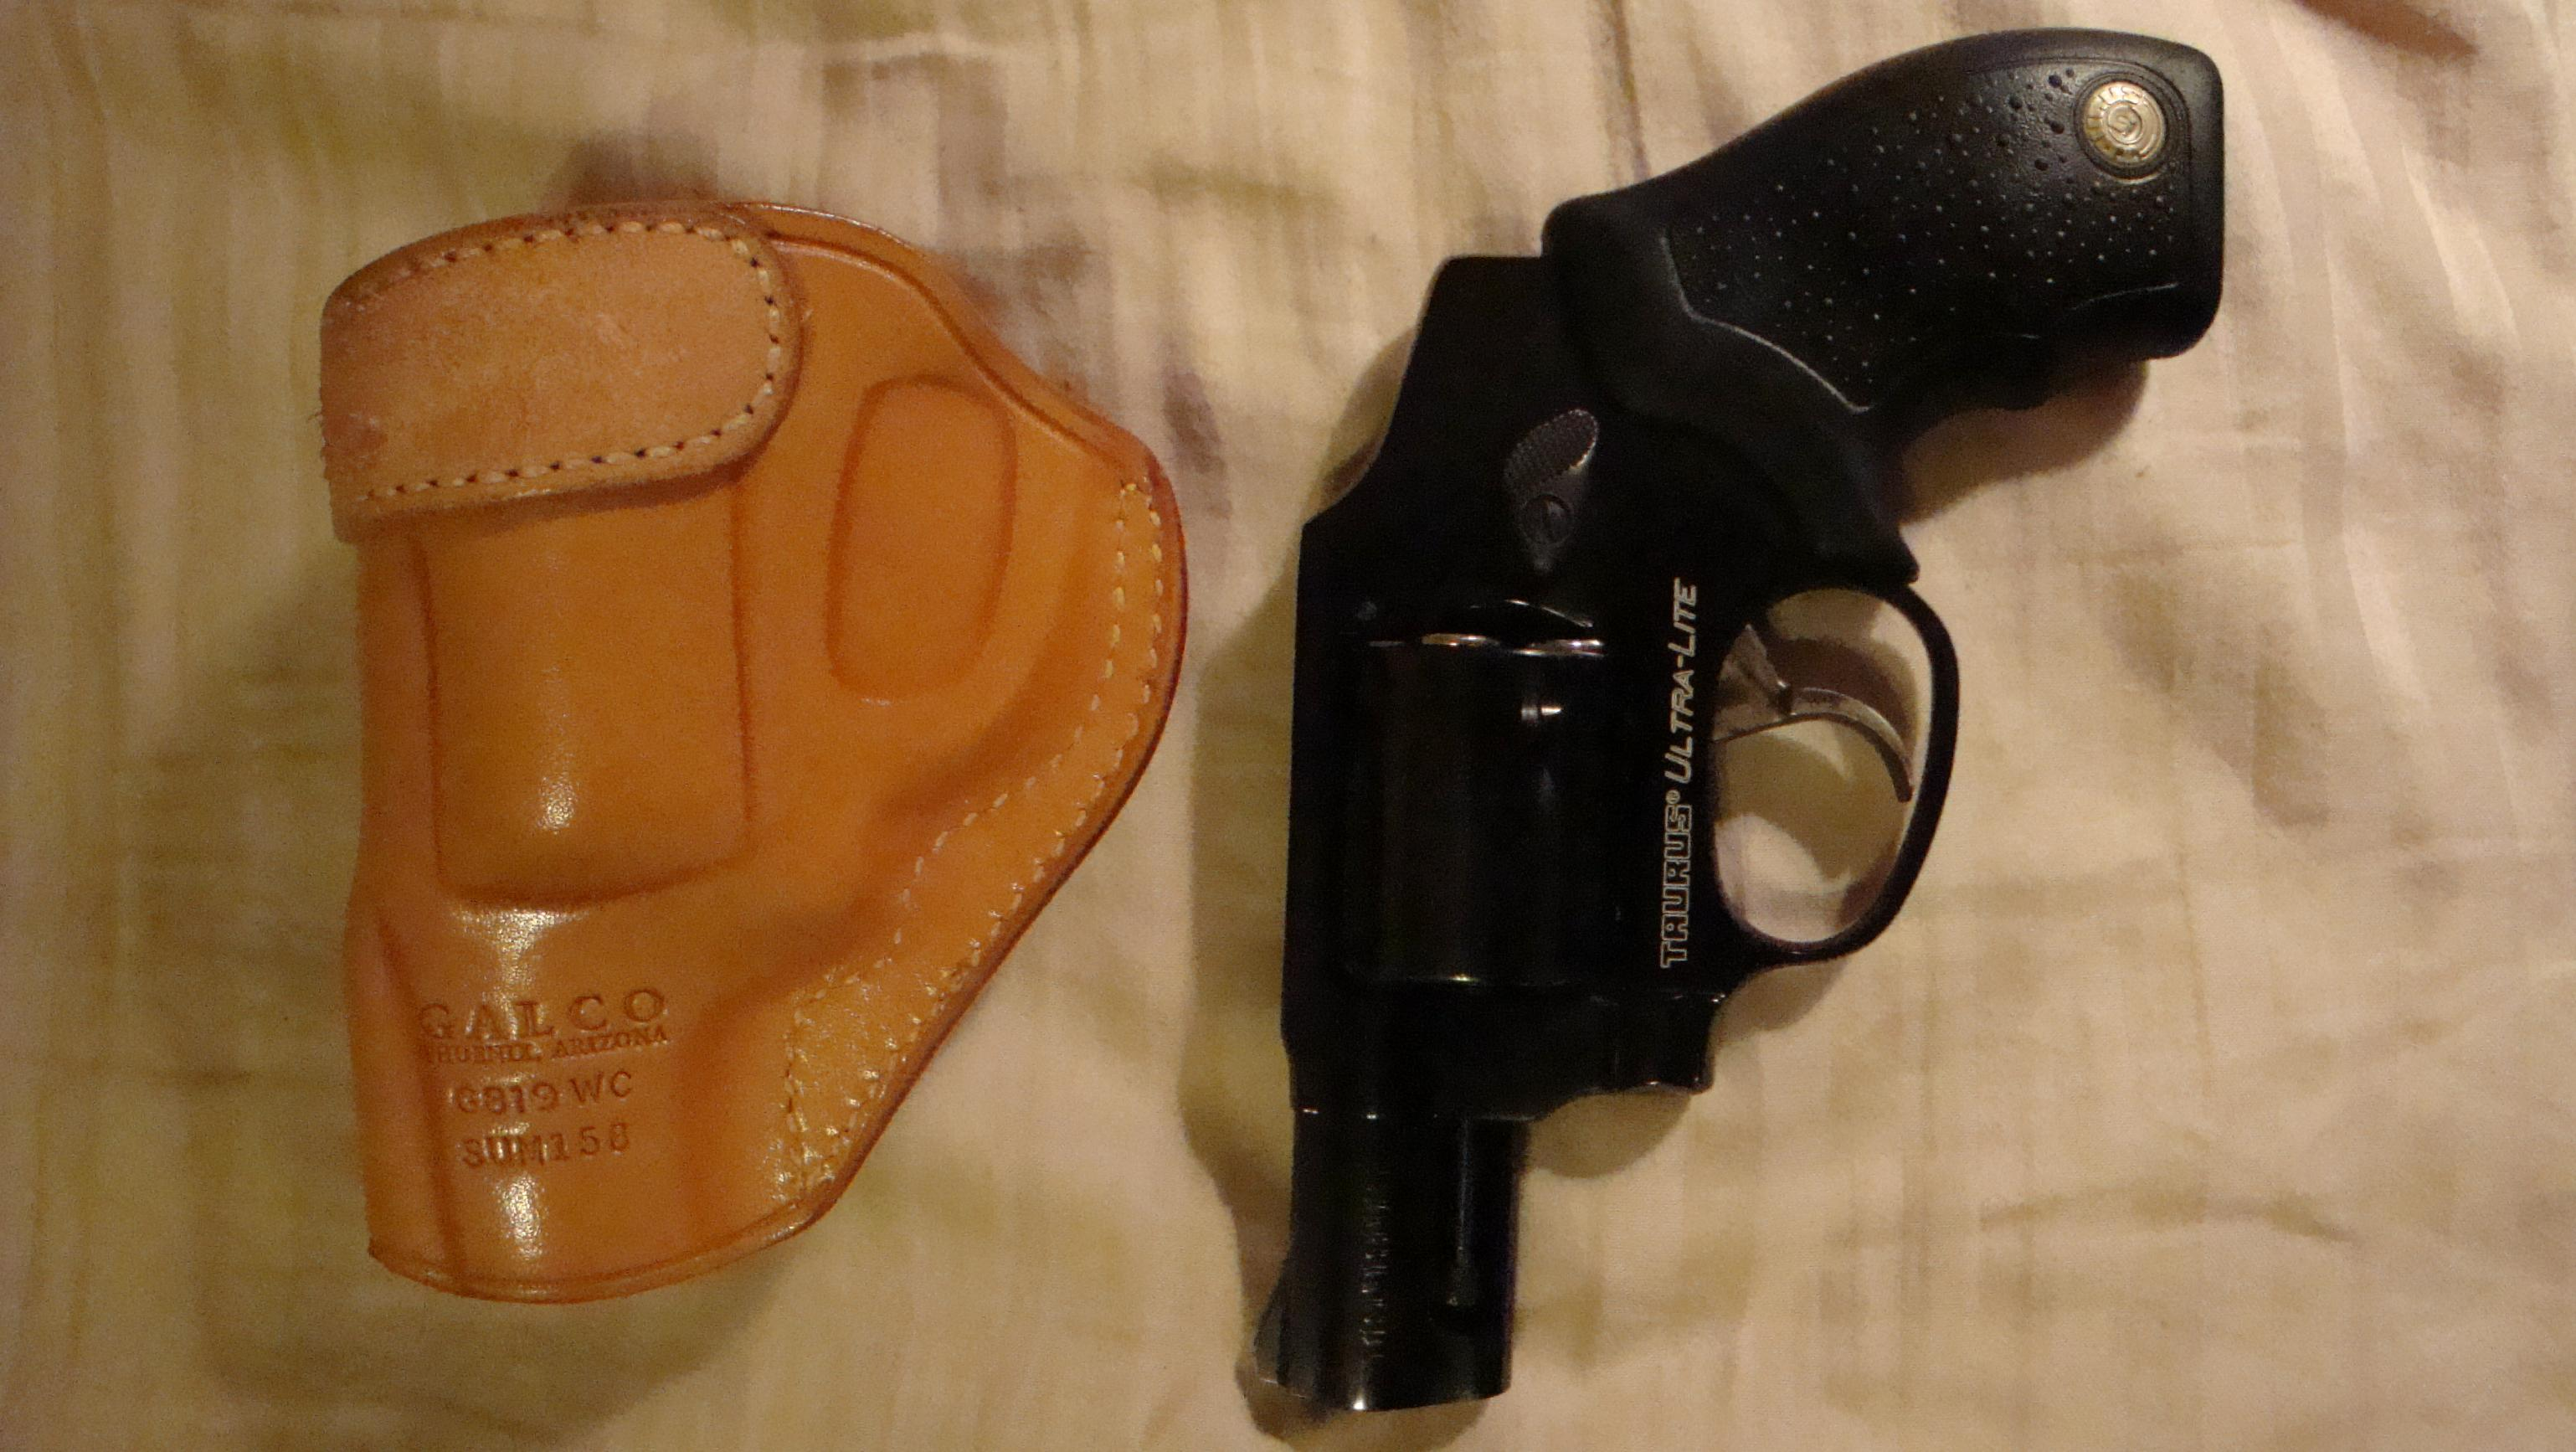 Let's See Your Pic's - How You Carry Concealed.-galco-gun.jpg